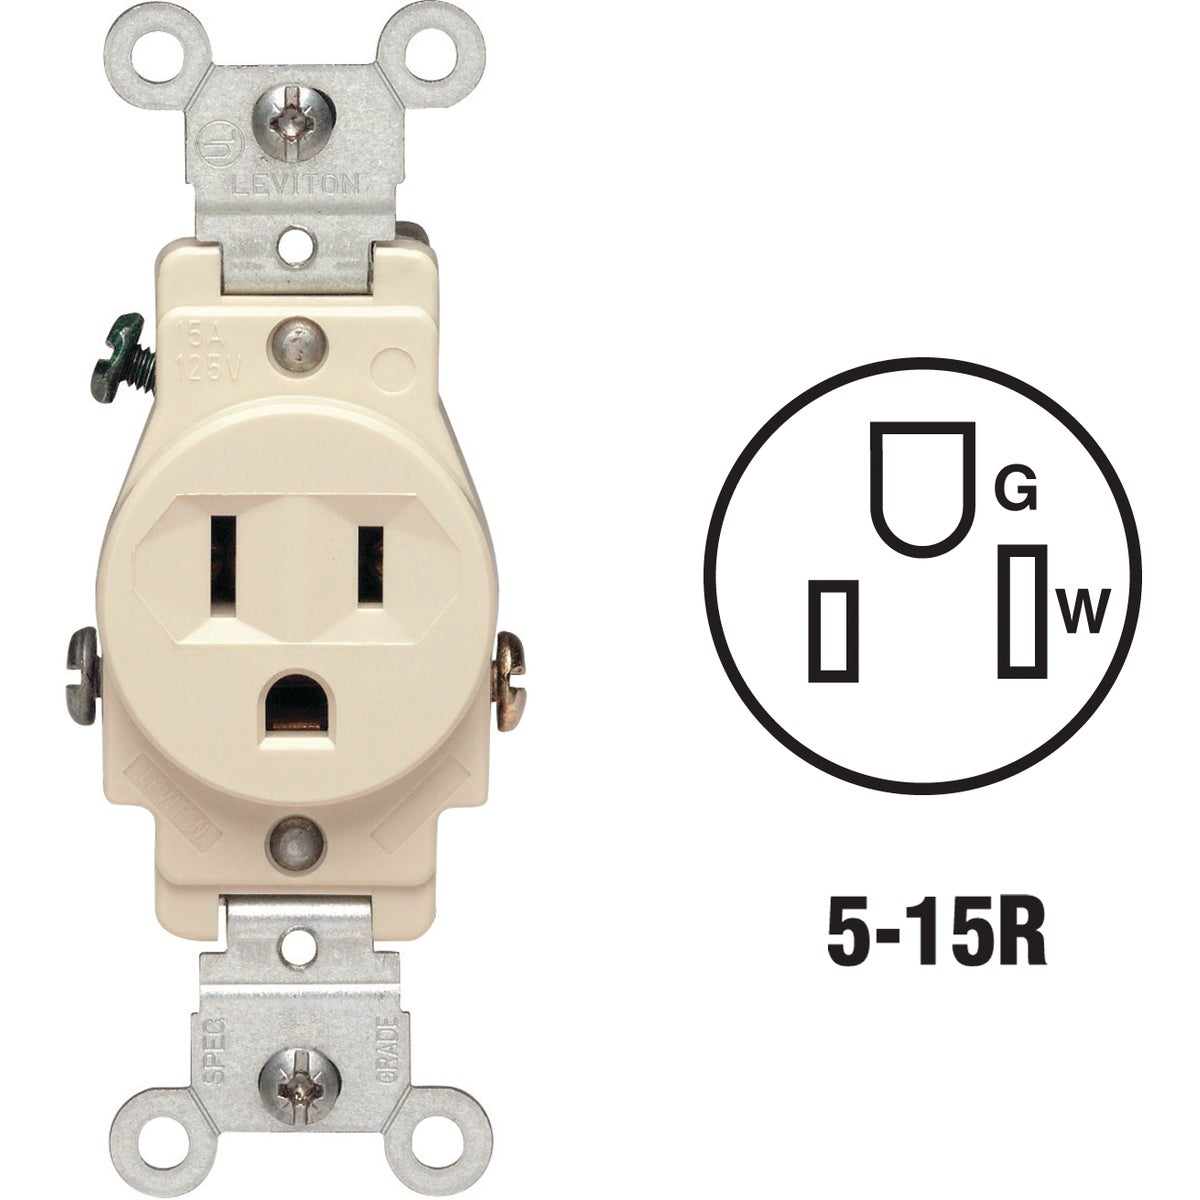 IV SINGLE OUTLET